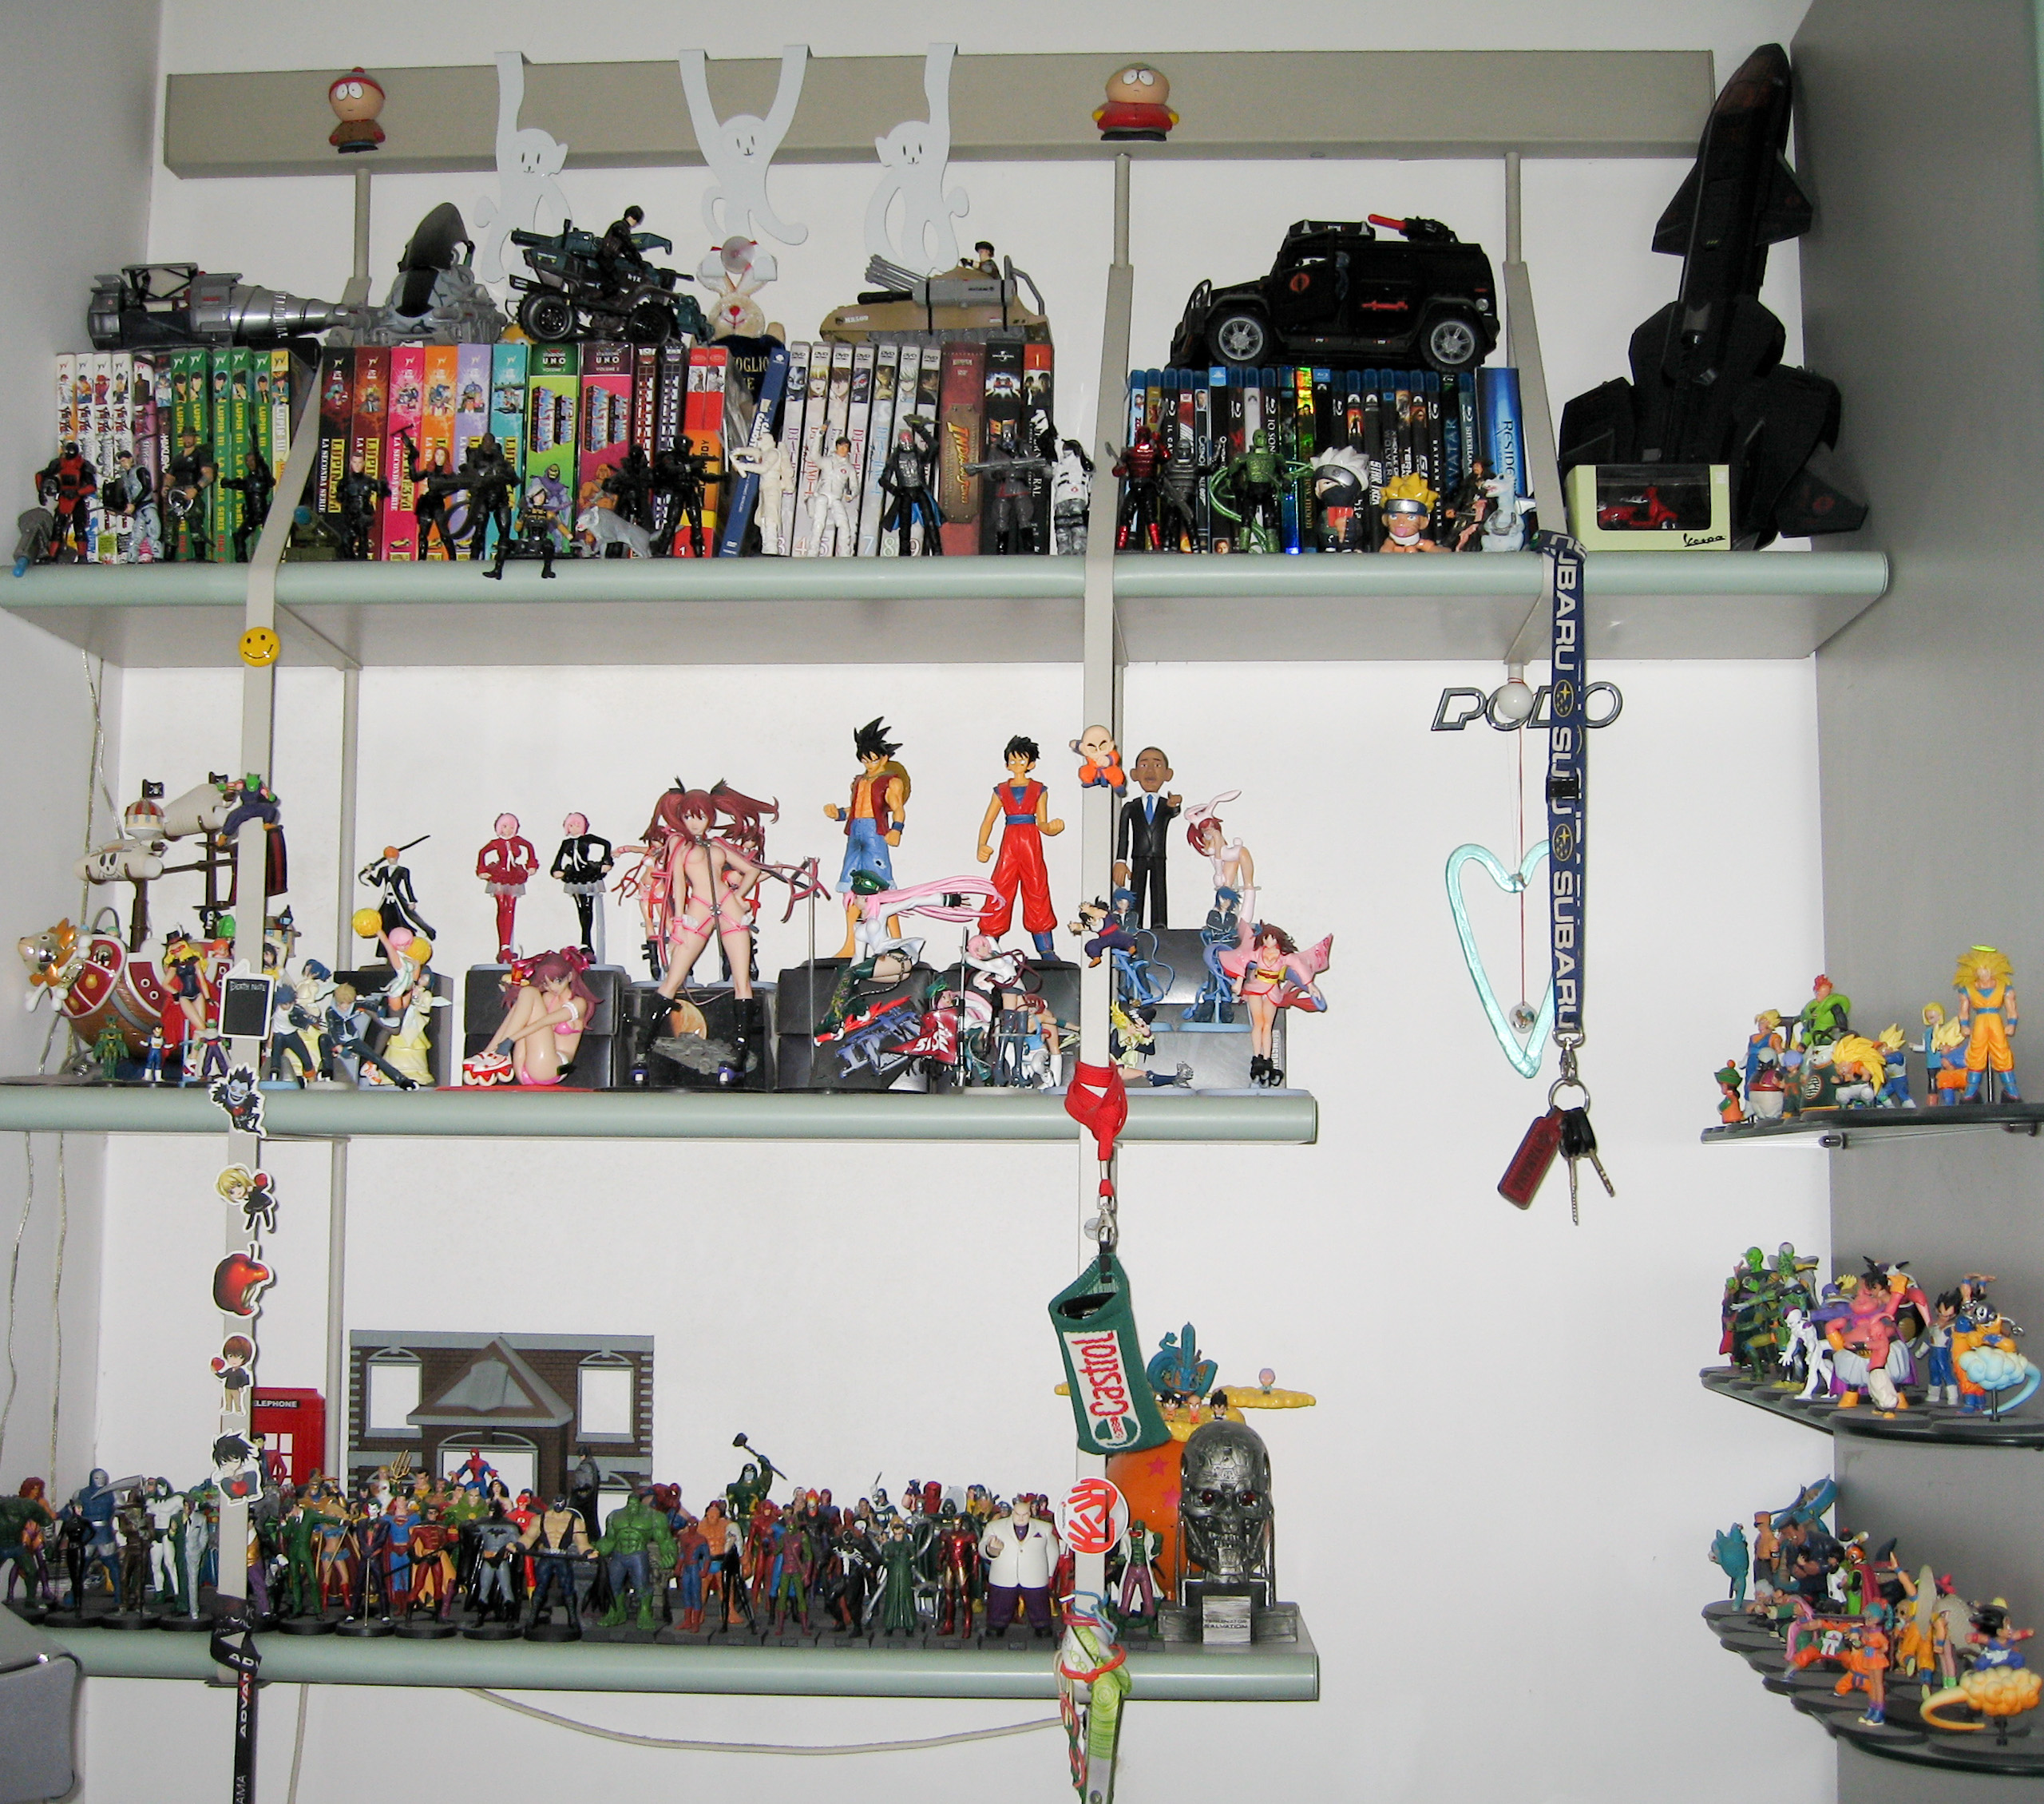 megahouse yamato one_piece nico_robin lunch nami usopp sanji monkey_d._luffy bandai franky naruto hatake_kakashi trunks bulma excellent_model piccolo vegeta son_goku roronoa_zoro brook karin kami kana dragon_ball_z uzumaki_naruto tony_tony_chopper dragon_ball son_gohan thousand_sunny freezer_-_final_form air_gear shen_long uchijima_yasuhiro french_doll yamcha son_goku_ssj future_trunks tenshinhan chaoz king_kai roshi hachi_gou_(android_8) captain_ginyu simca vegeta_ssj_(majin) proovy noyamano_ringo future_trunks_ssj majin_buu_(fat) son_goku_ssj3 son_goten gotenks_ssj3 yajirobe freezer_-_first_form hachette imperfect_cell nakazawa_hiroyuki vegeta_ssj jackie_chun perfect_cell majin_buu_(kid) announcer son_gohan_ssj2 ju-hachi_gou_(android_18) ju-roku_gou_(android_16) adachi_emily sumeragi_kururu vegetto_ssj king_piccolo tao_pai_pai bardock fortuneteller_baba minami_itsuki wanijima_agito mr._popo ju-nana_gou_(android_17) mikura_kazuma tori-bot general_blue creators'_labo dragon_ball_-_the_legend_of_manga kuririn yamaguchi_noriyuki